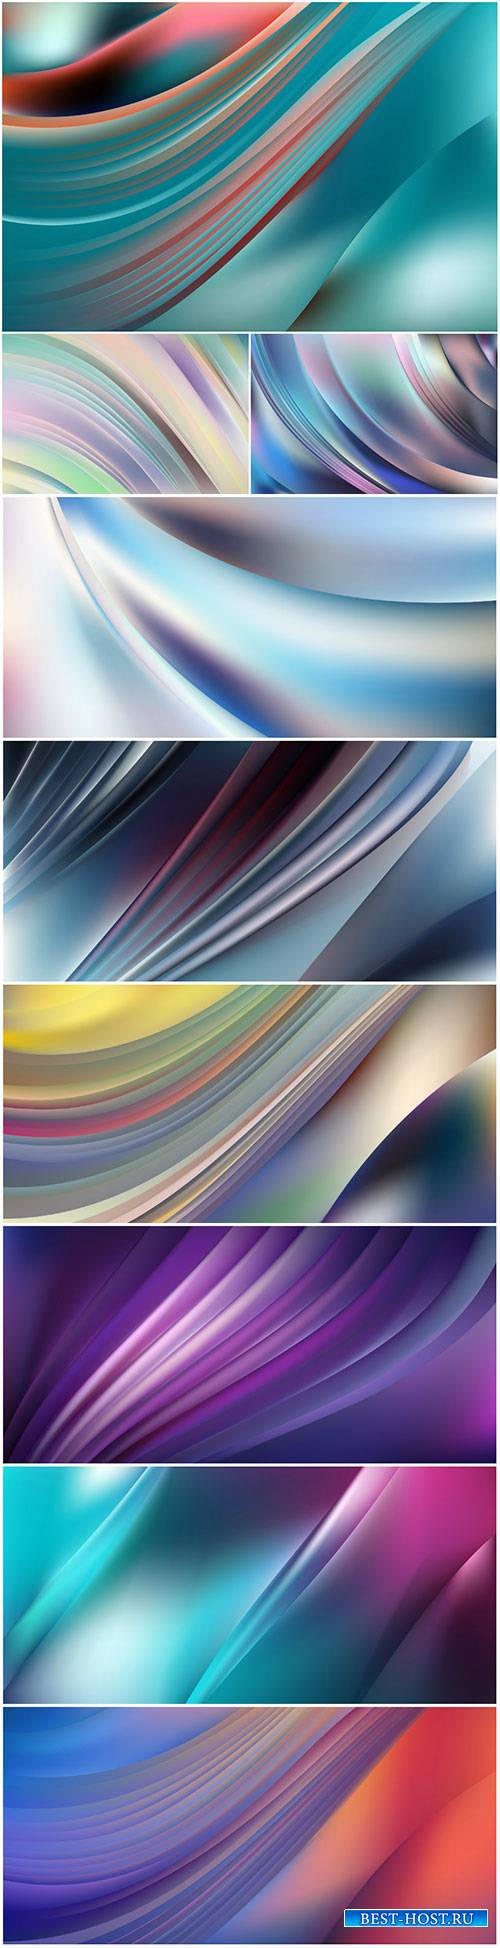 Creative abstract background vector design # 2